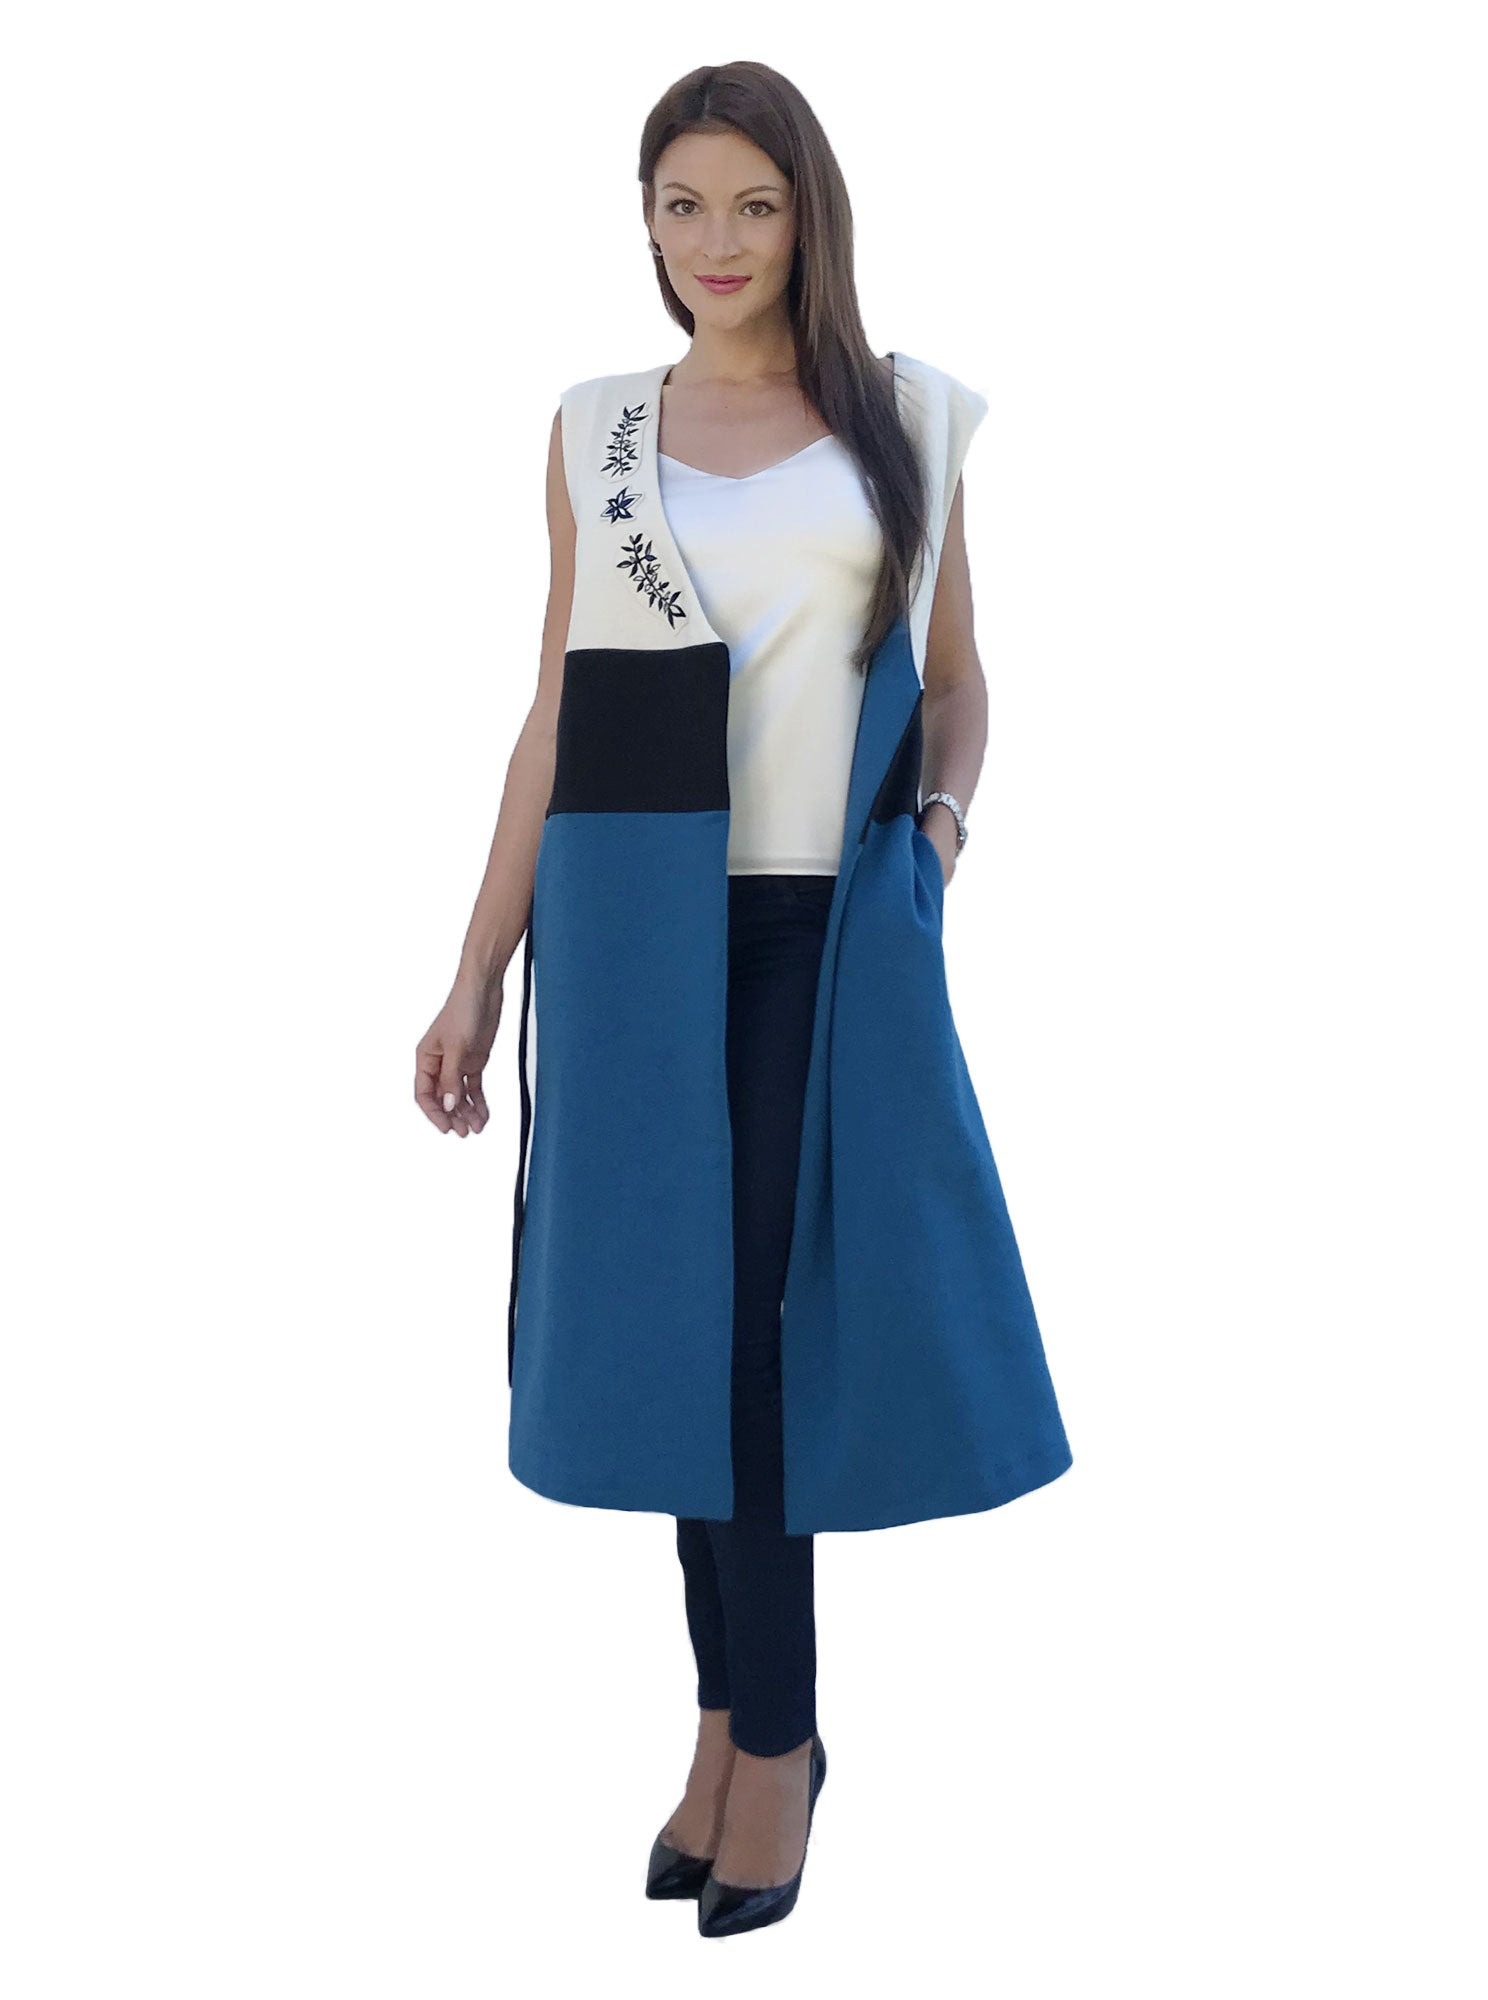 EESTI 100 Organic Cotton Embroidered Sleeveless Coat (Limited edition)